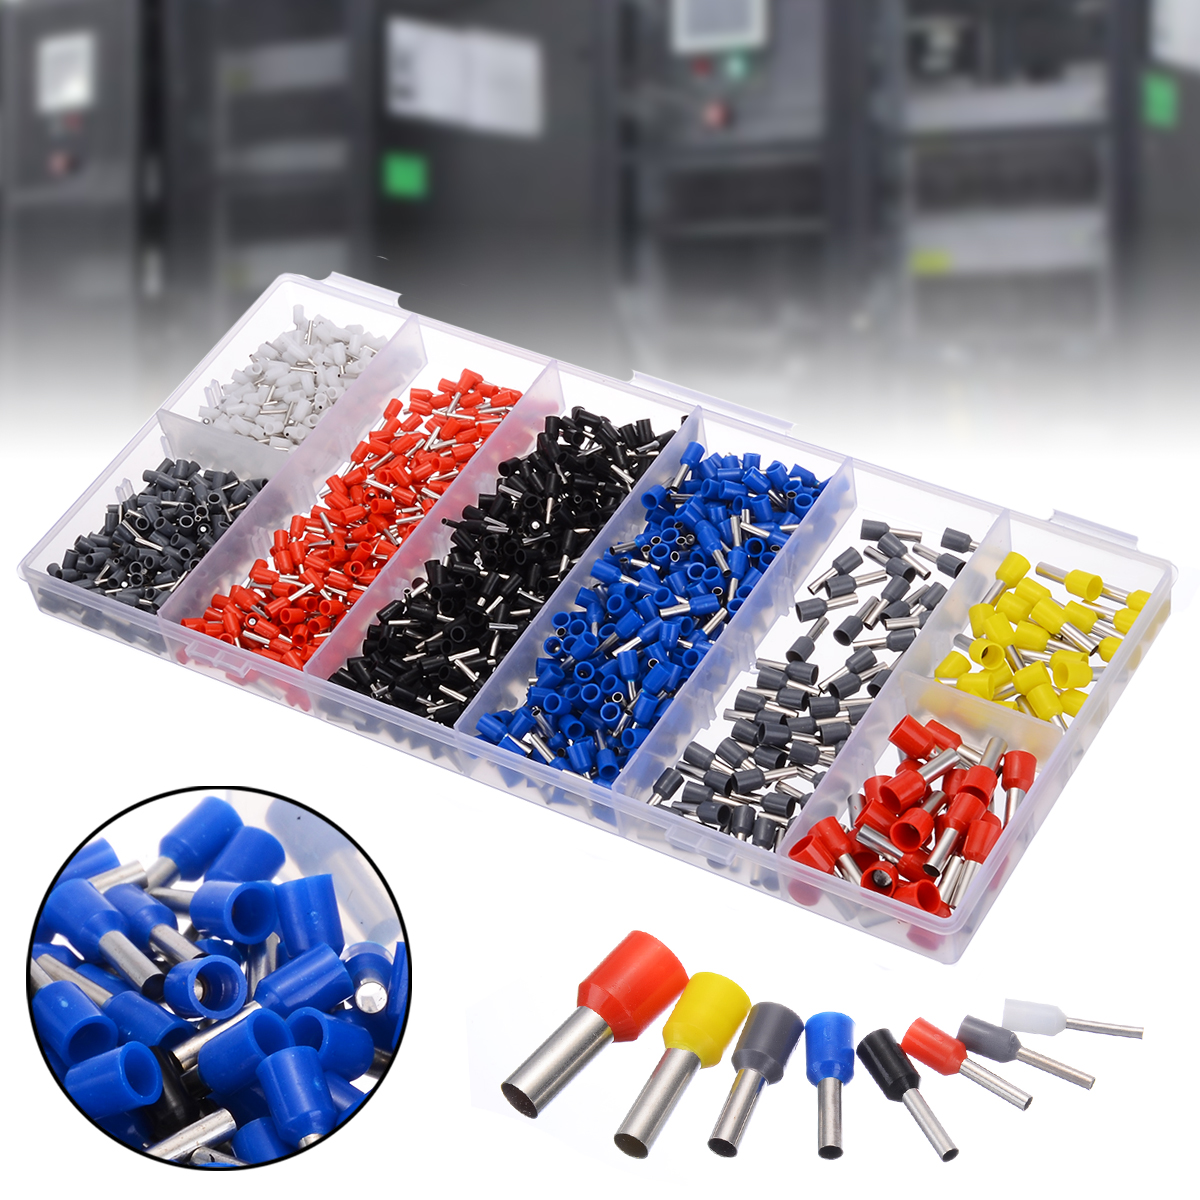 685pcs/box Insulated 0.5-10mm2 End Sleeve Cable Lugs Wire End Ferrule Terminal Assortment Kits Wire Connector Terminals